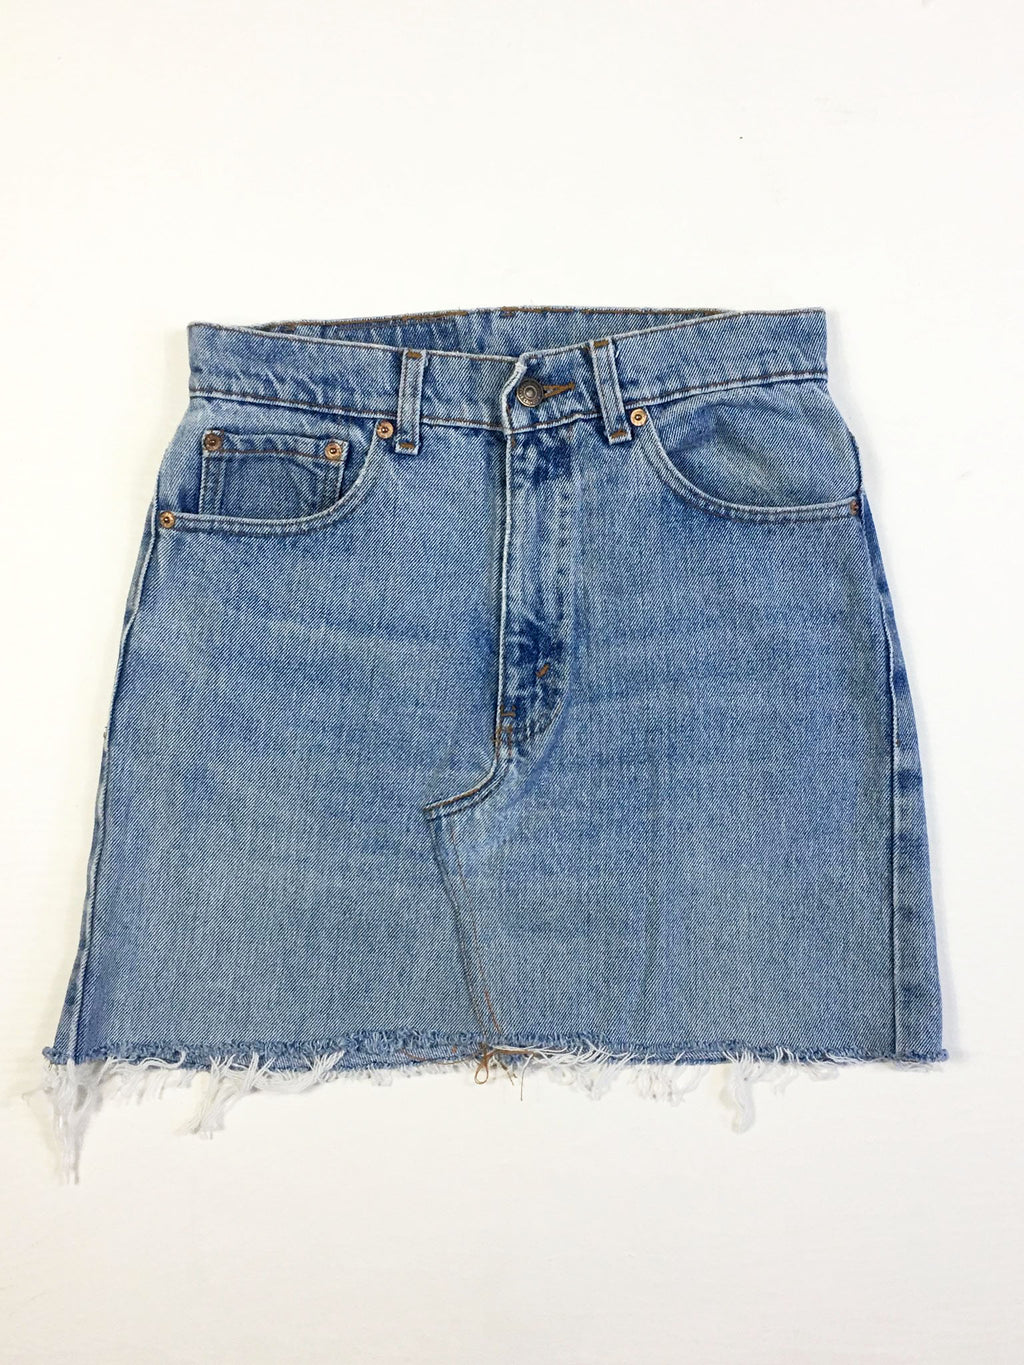 VINTAGE LEVI DENIM SKIRT - GUSSET STITCH - BLEACHED DENIM